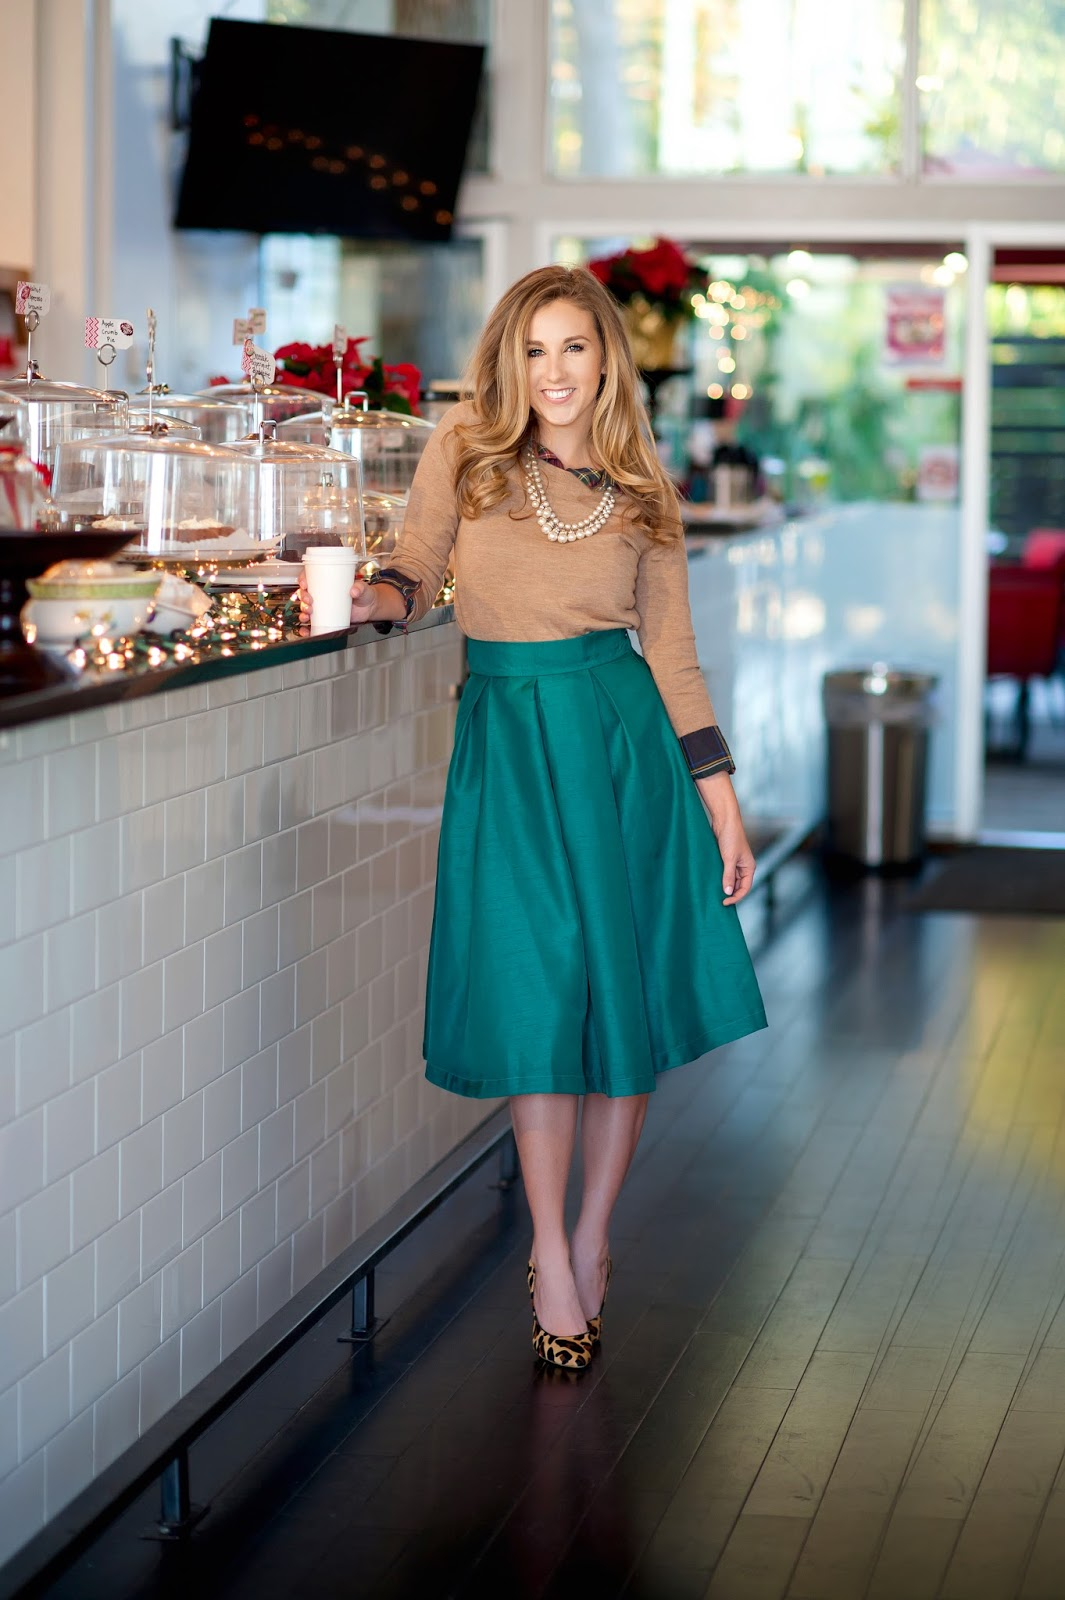 jcrew-christmas-eve-service-outfit-midi-skirt-with-pumps-and-layers